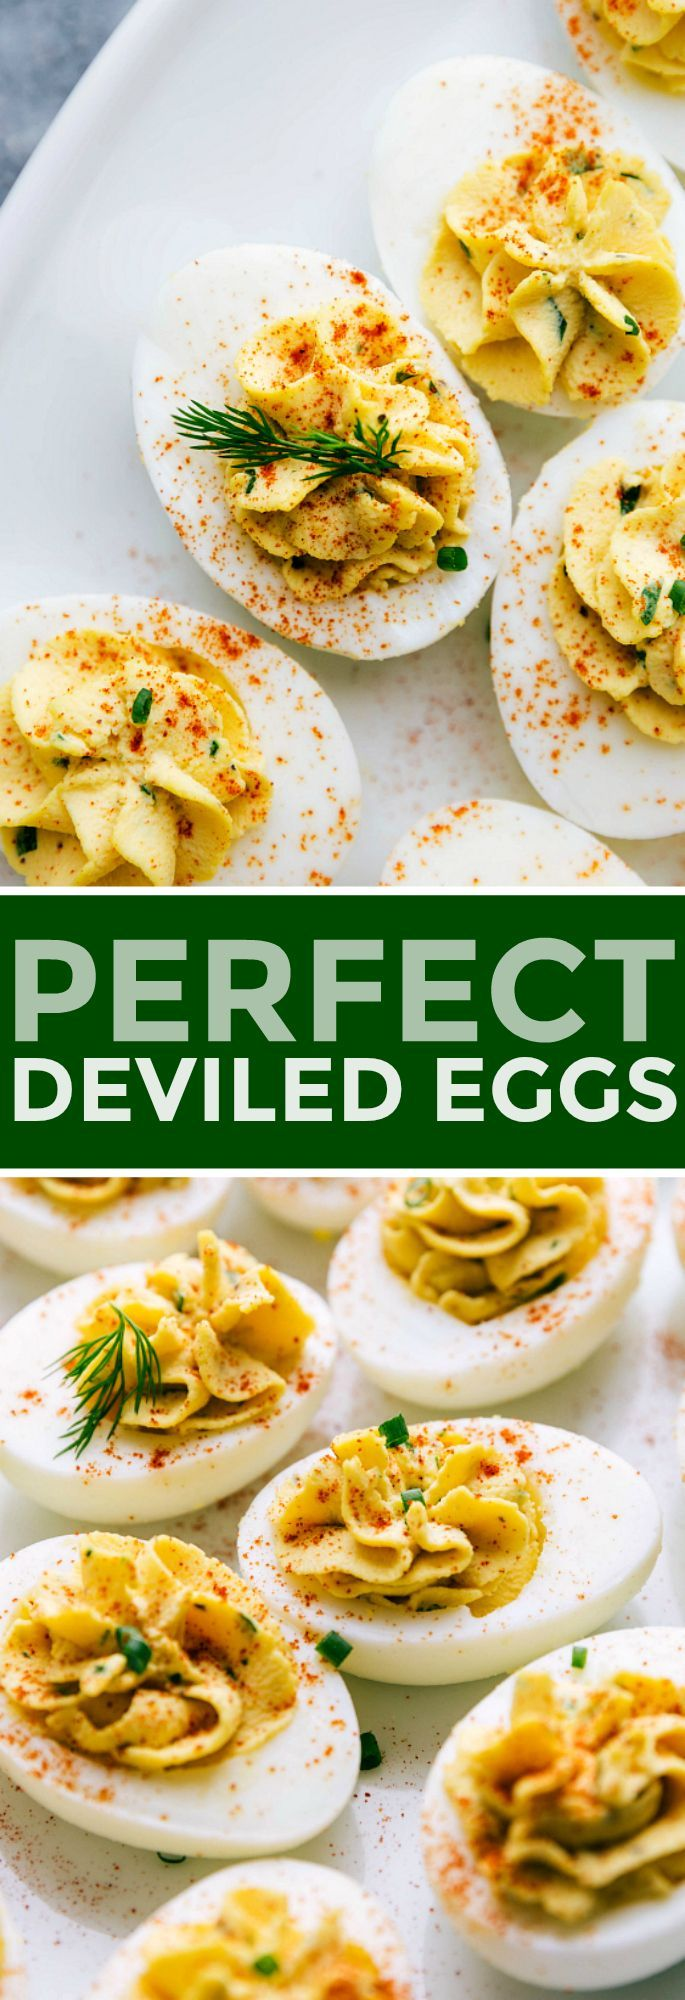 Deviled Egg Recipe {Step-by-Step Photos} | Chelsea's Messy Apron